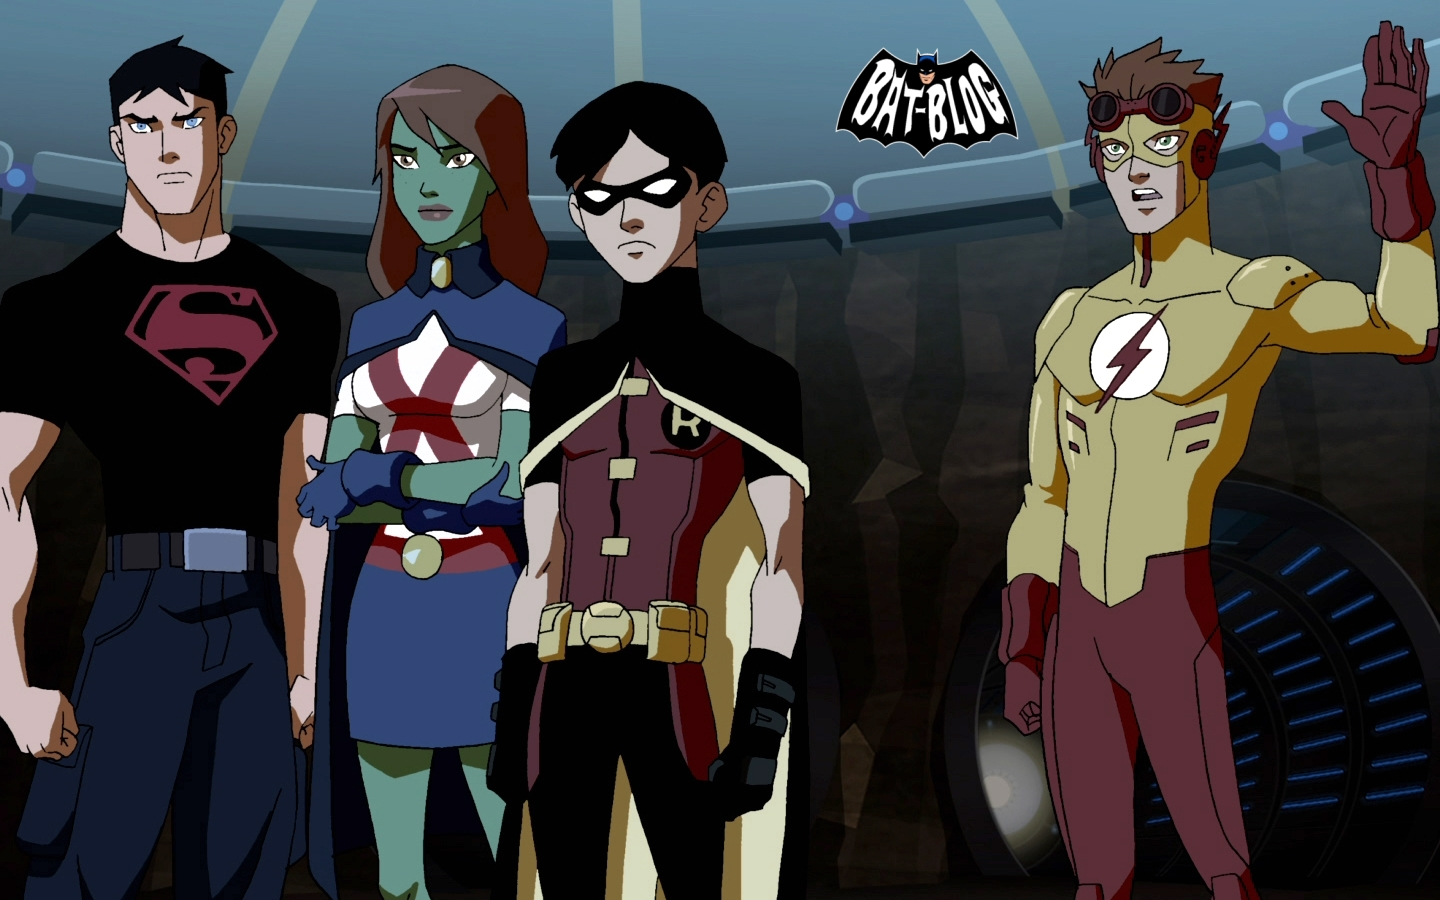 YOUNG JUSTICE Wallpaper Backgrounds and Preview Videos to enjoy The 1440x900